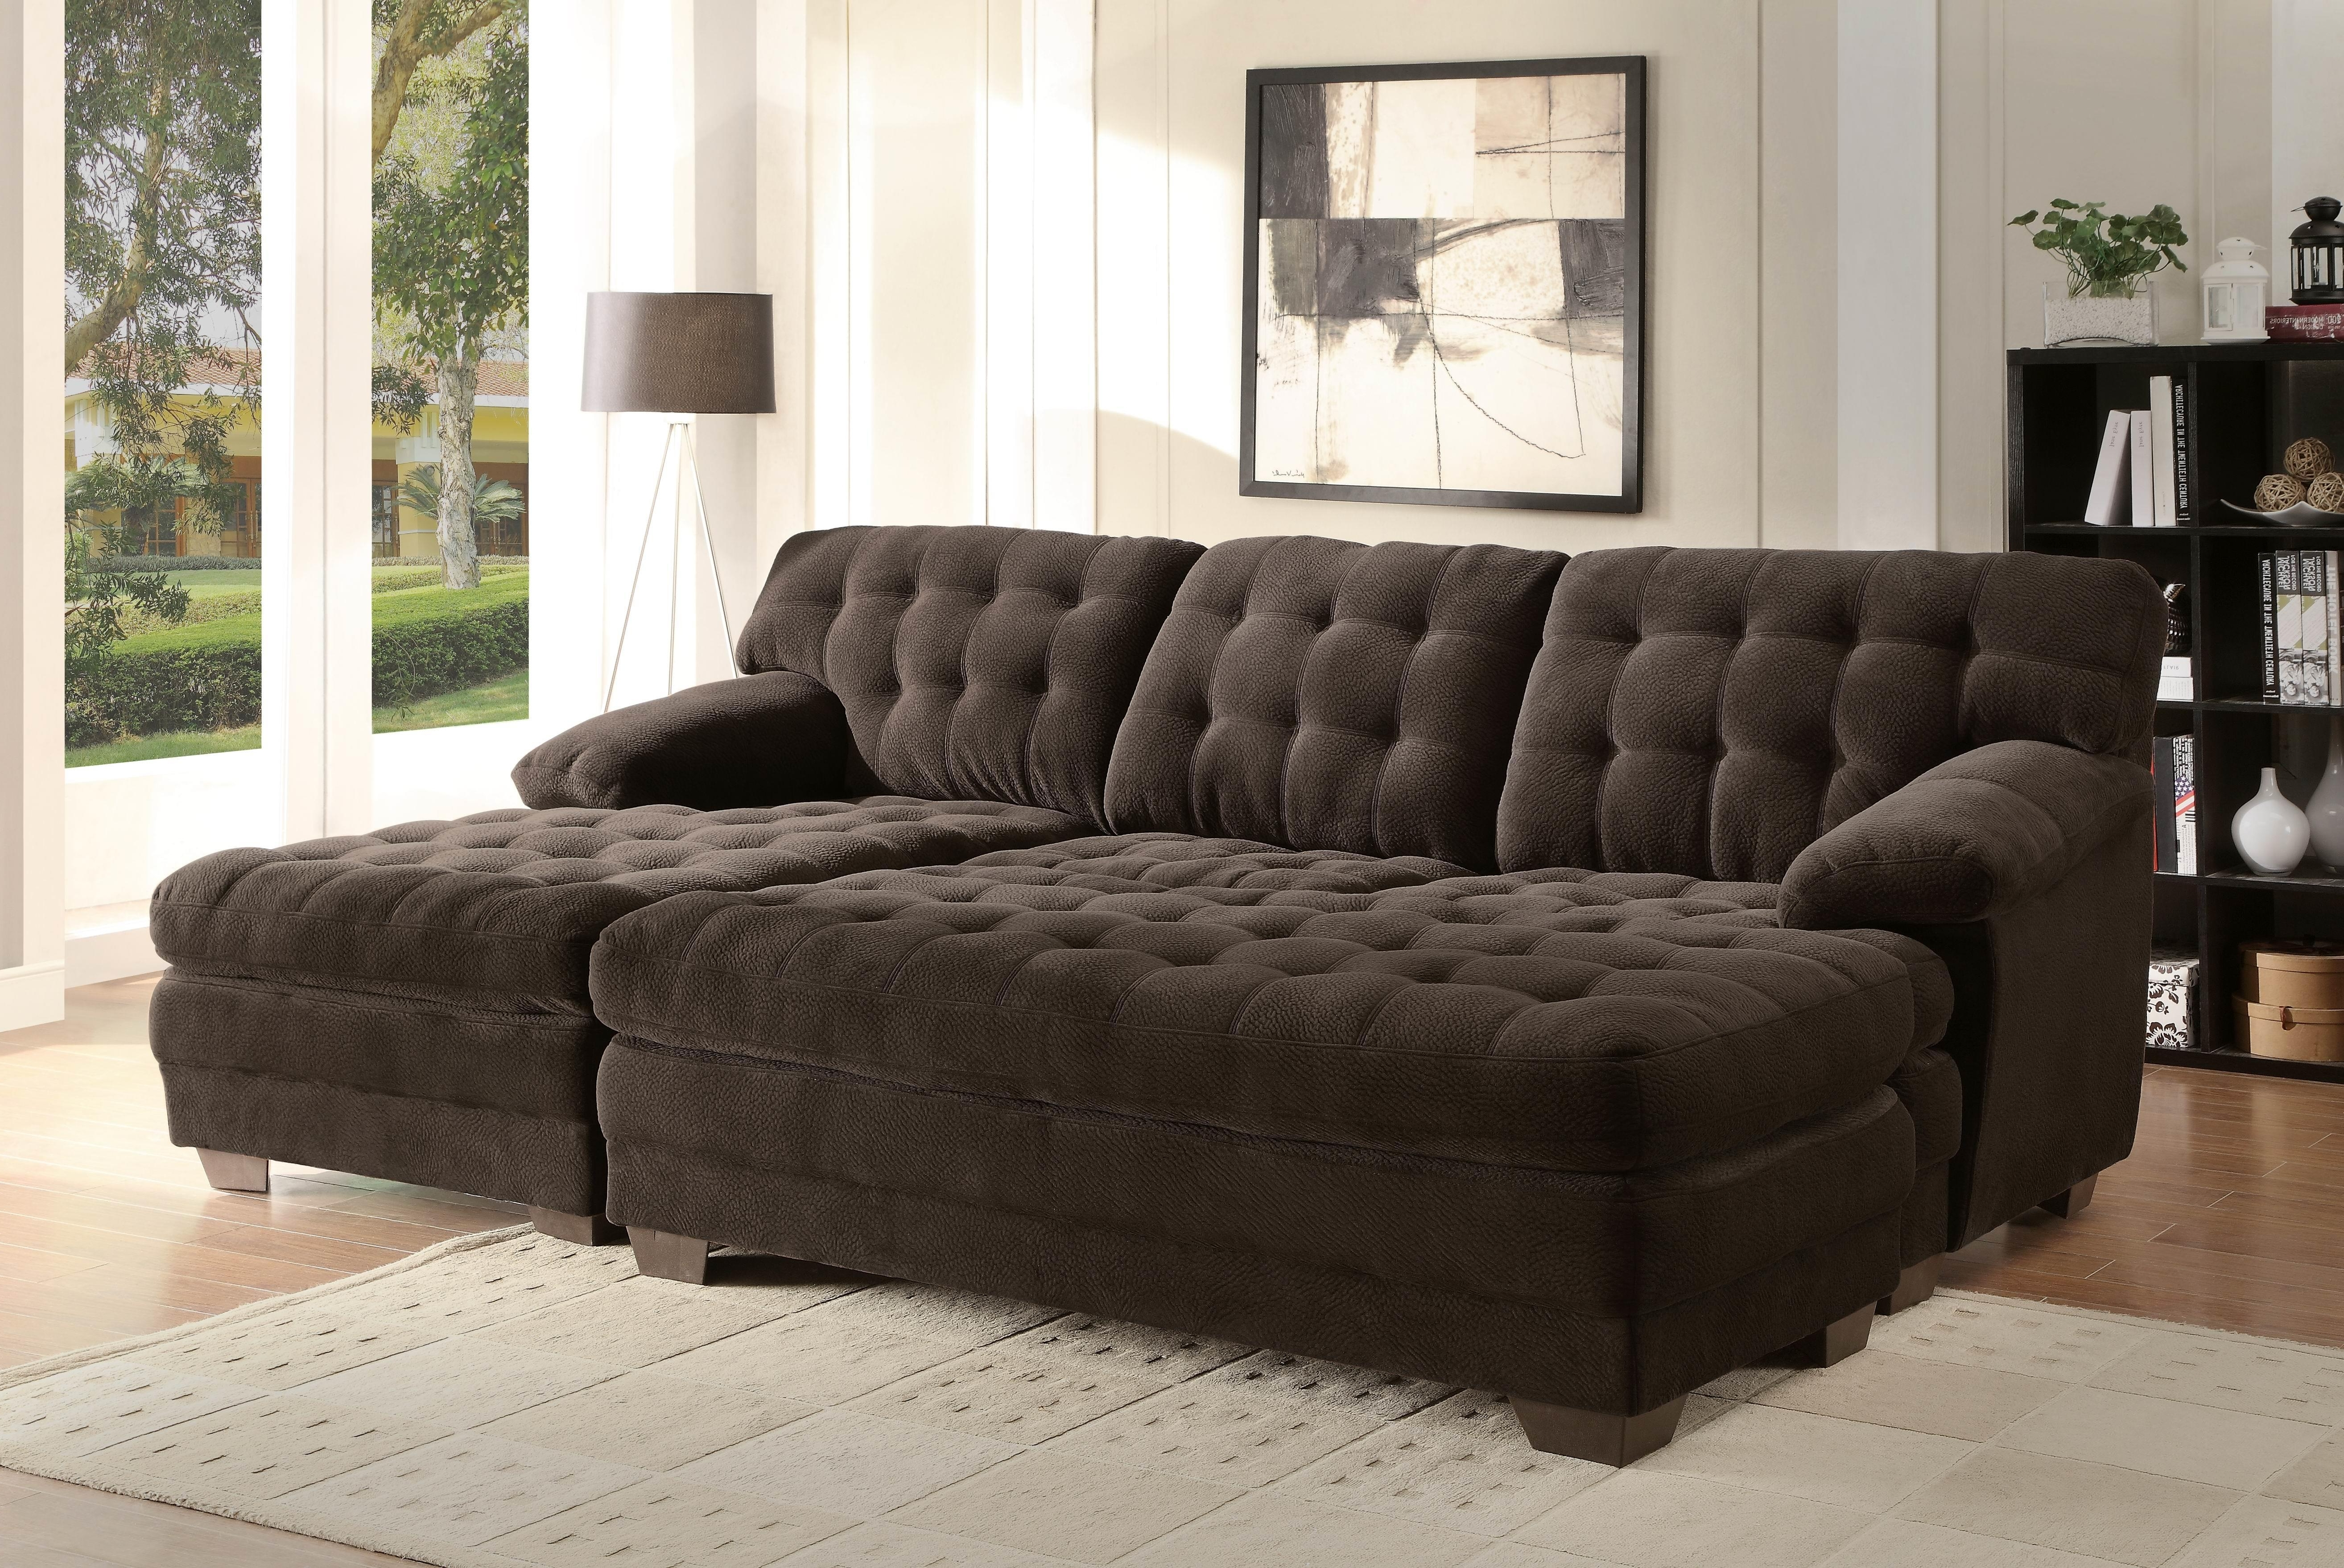 Aifaresidency Throughout Couches With Large Ottoman (View 5 of 20)